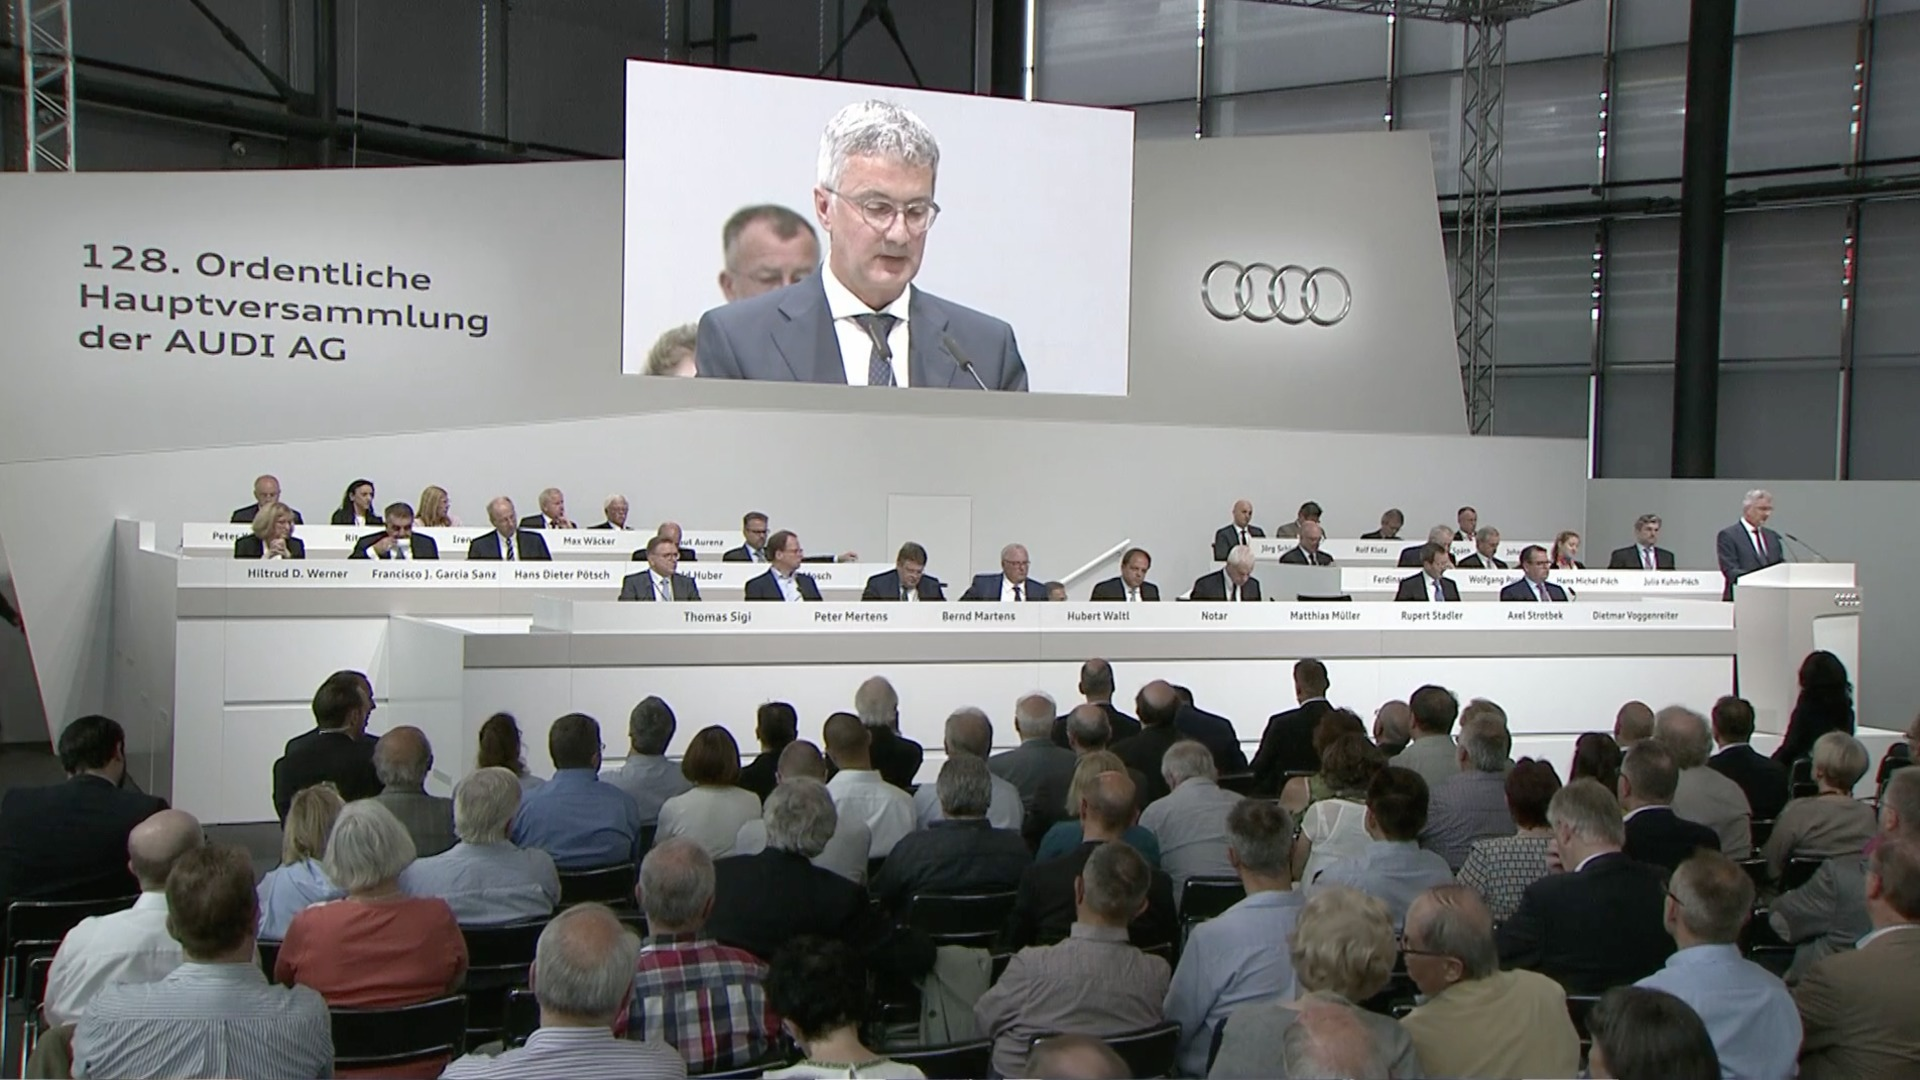 Annual General Meeting AUDI AG 2017 - The recording